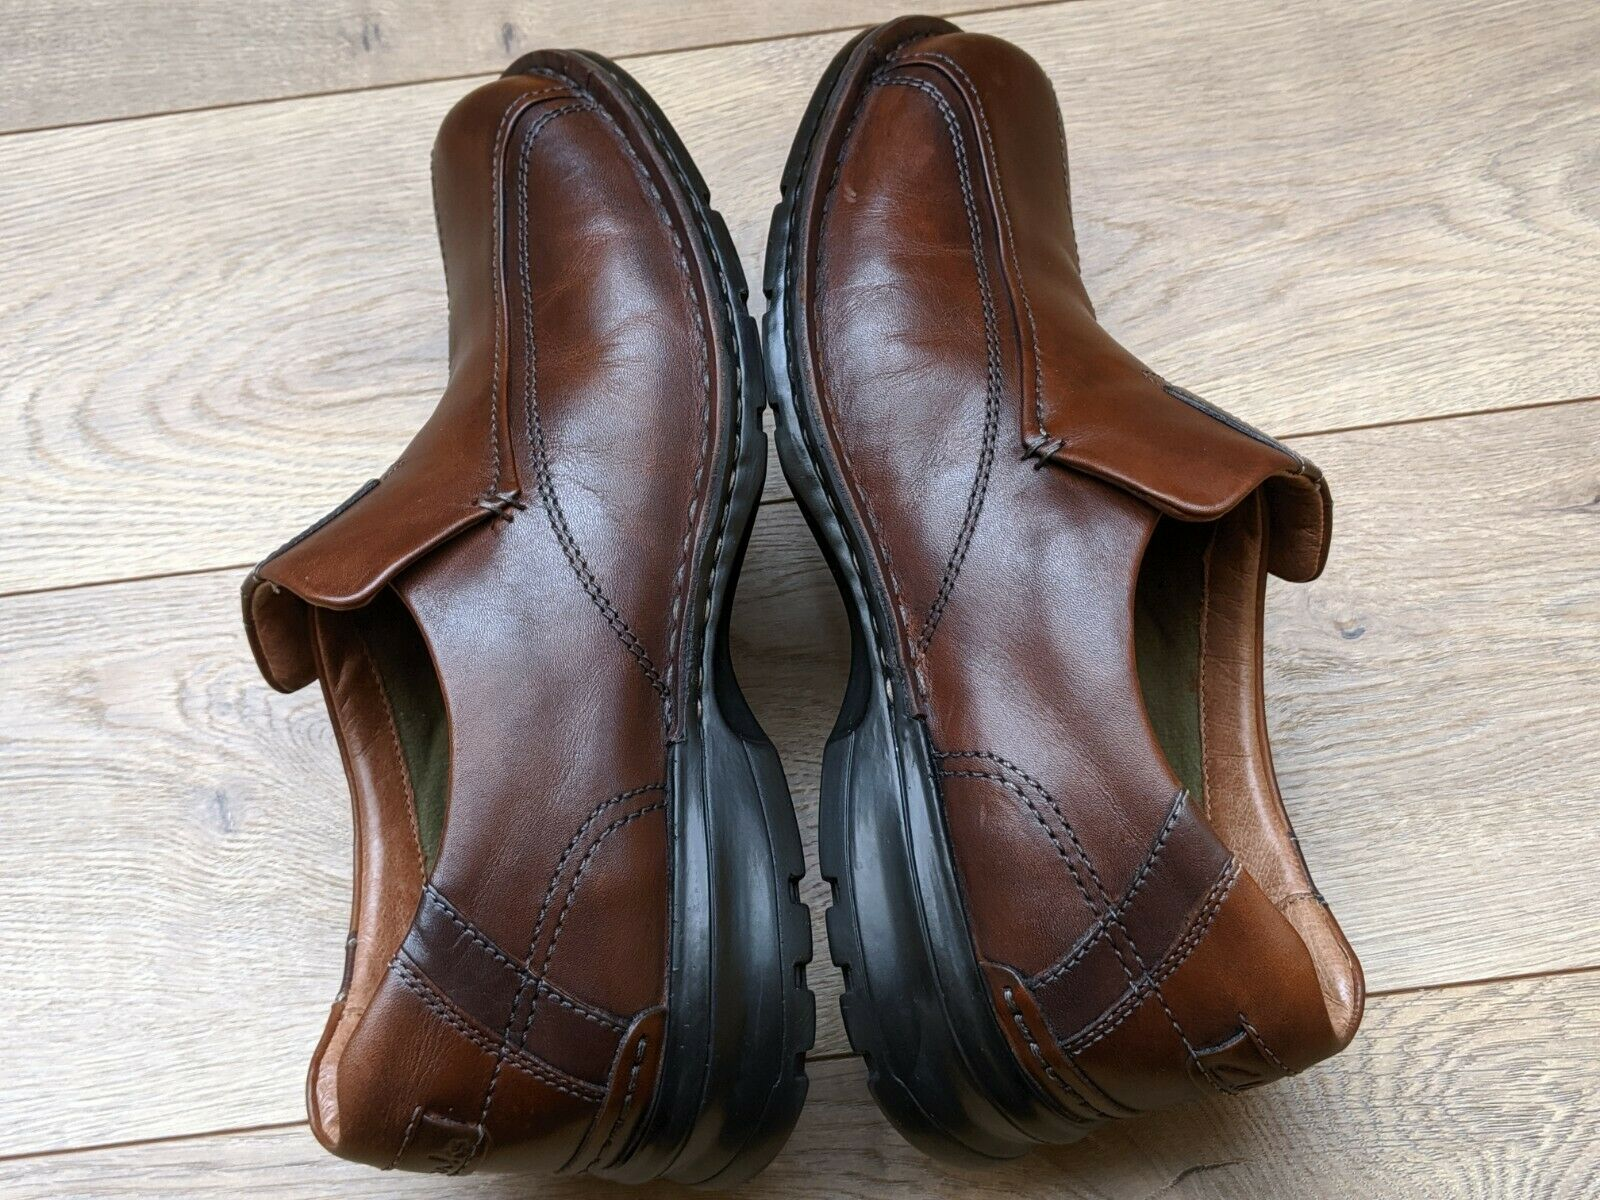 Men's Clarks Escalade Auburn Brown Leather Casual Dress Slip-On Loafers US 8.5